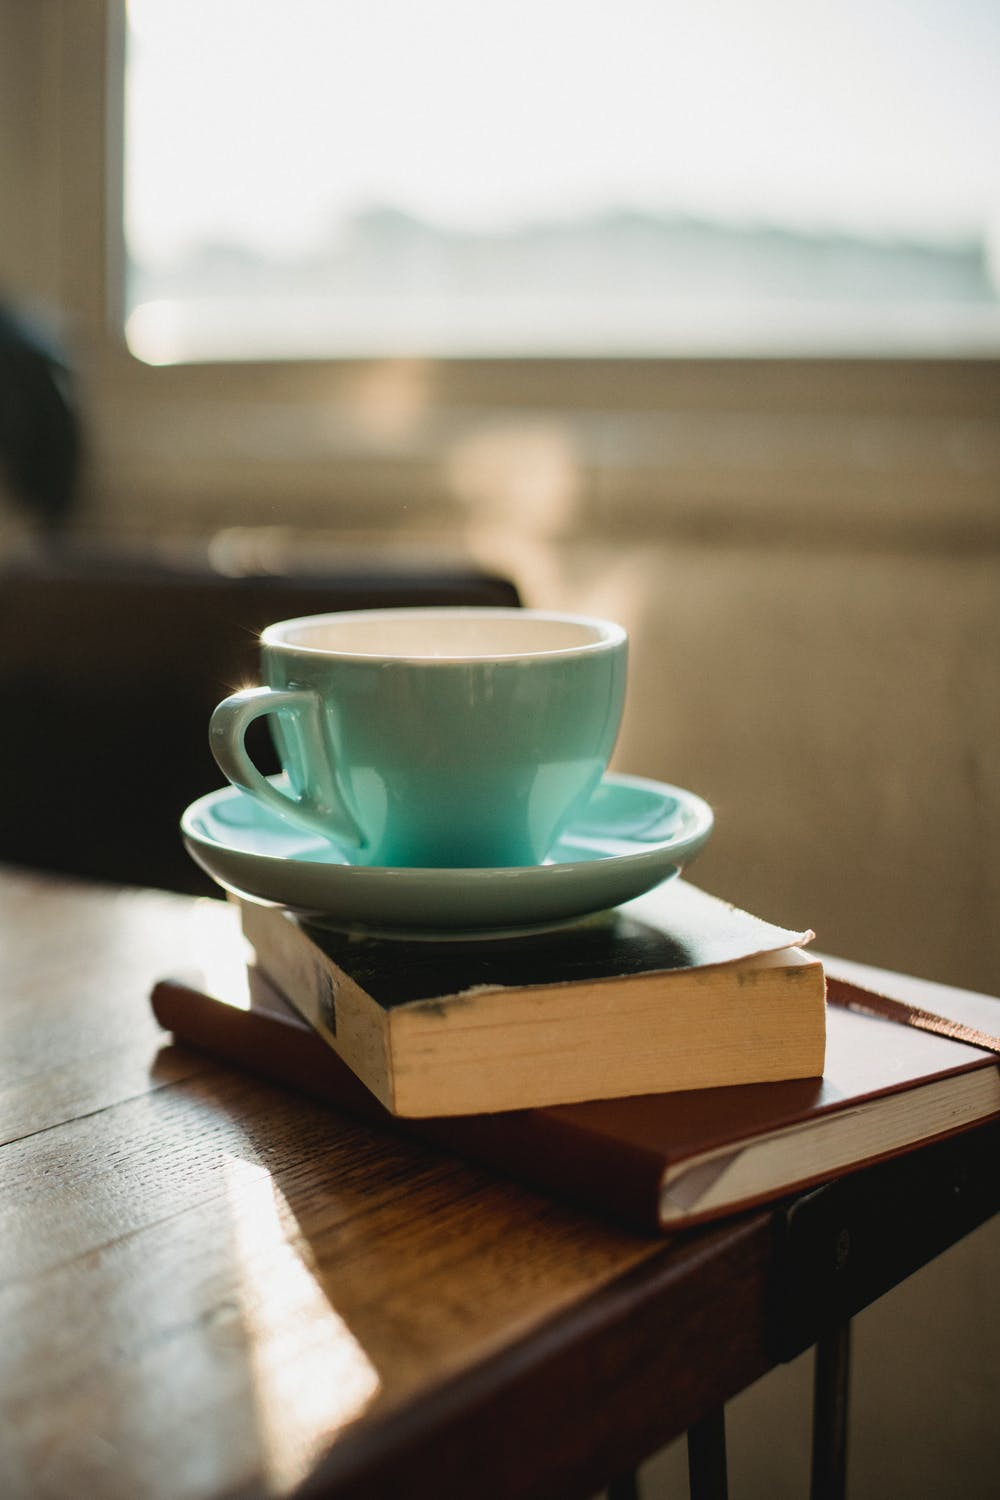 A coffee cup on top of a stack of books.